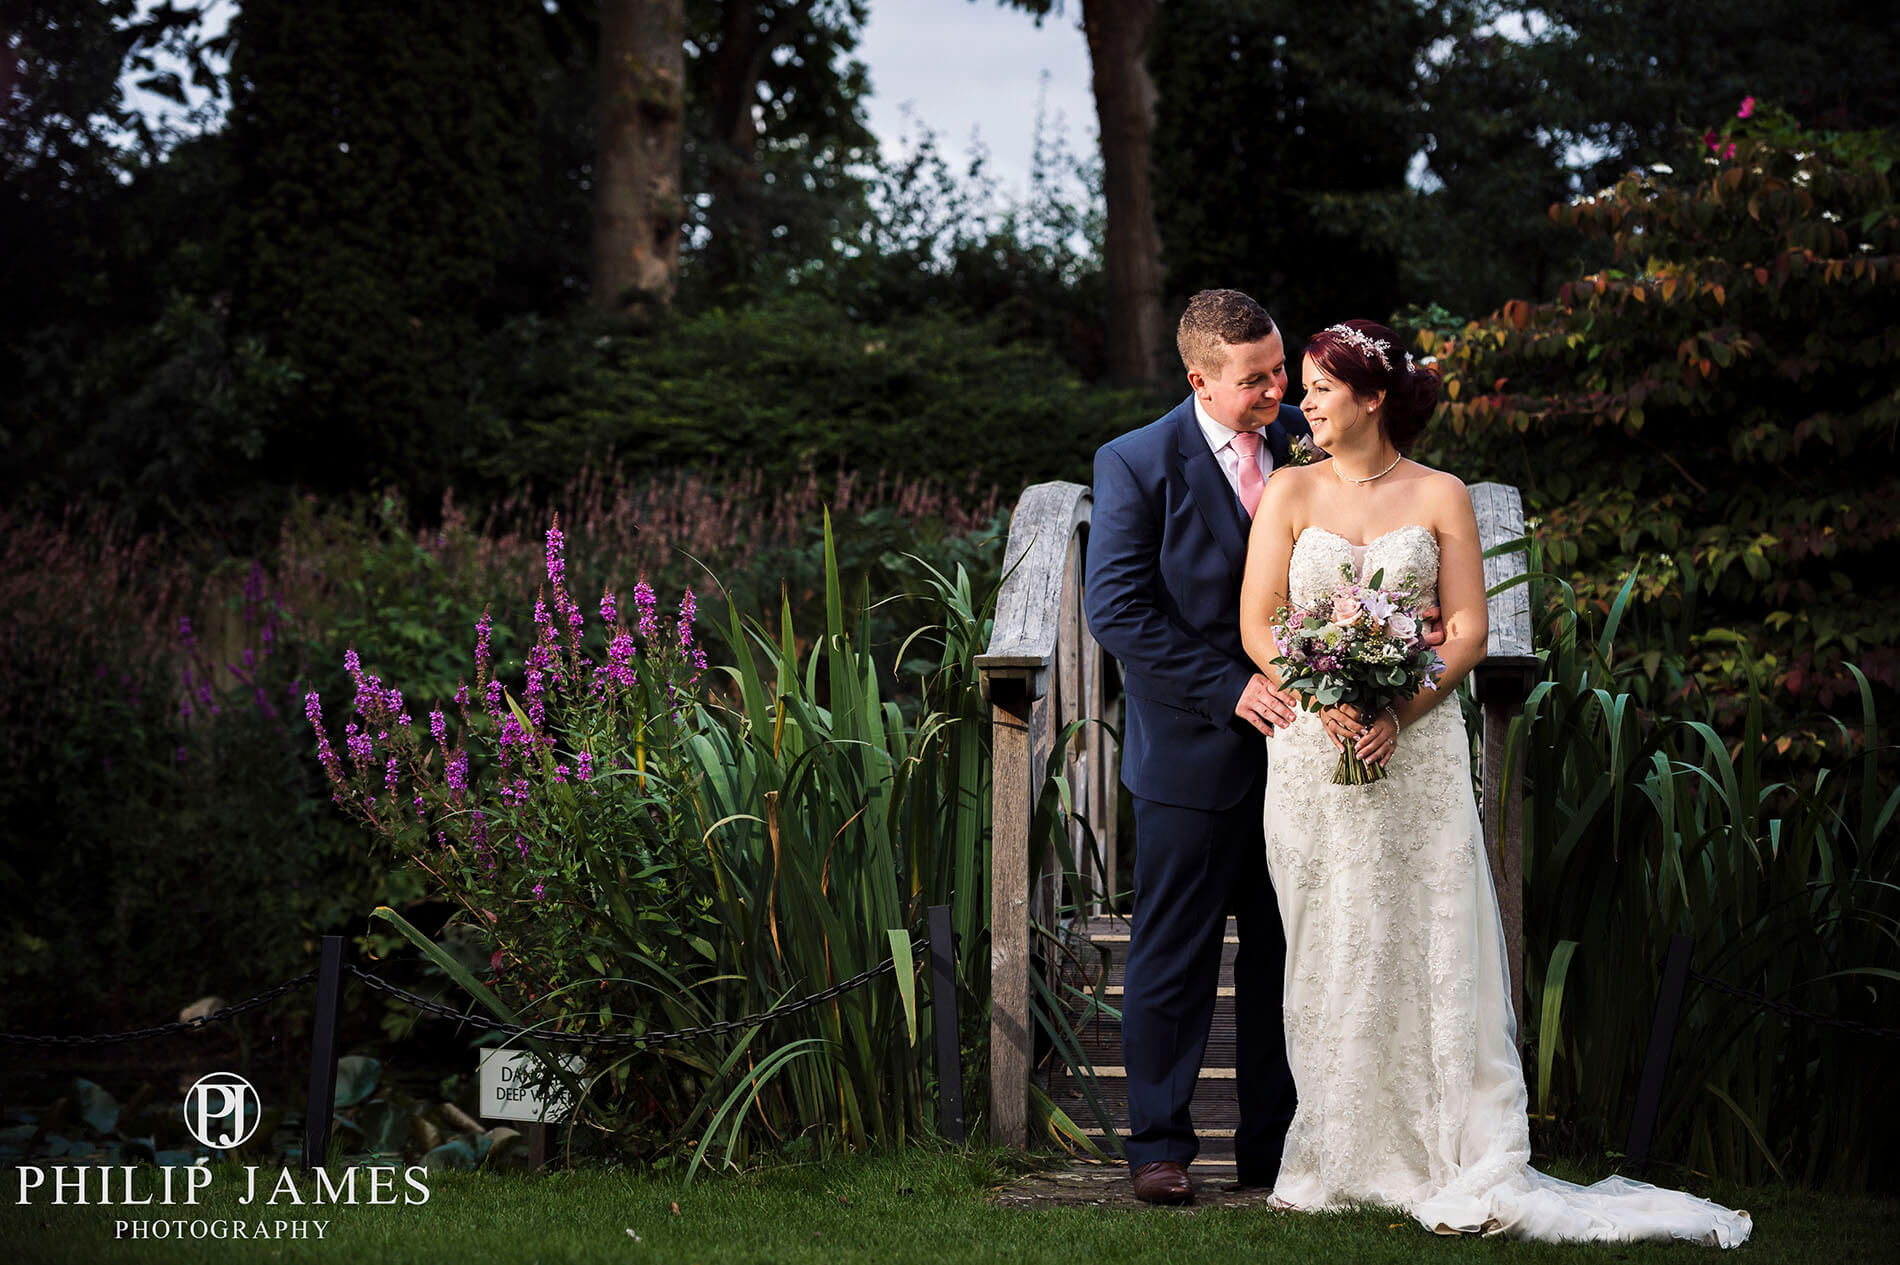 Birmingham Wedding Photographer - Philip James Photography based in Solihull (60 of 68)